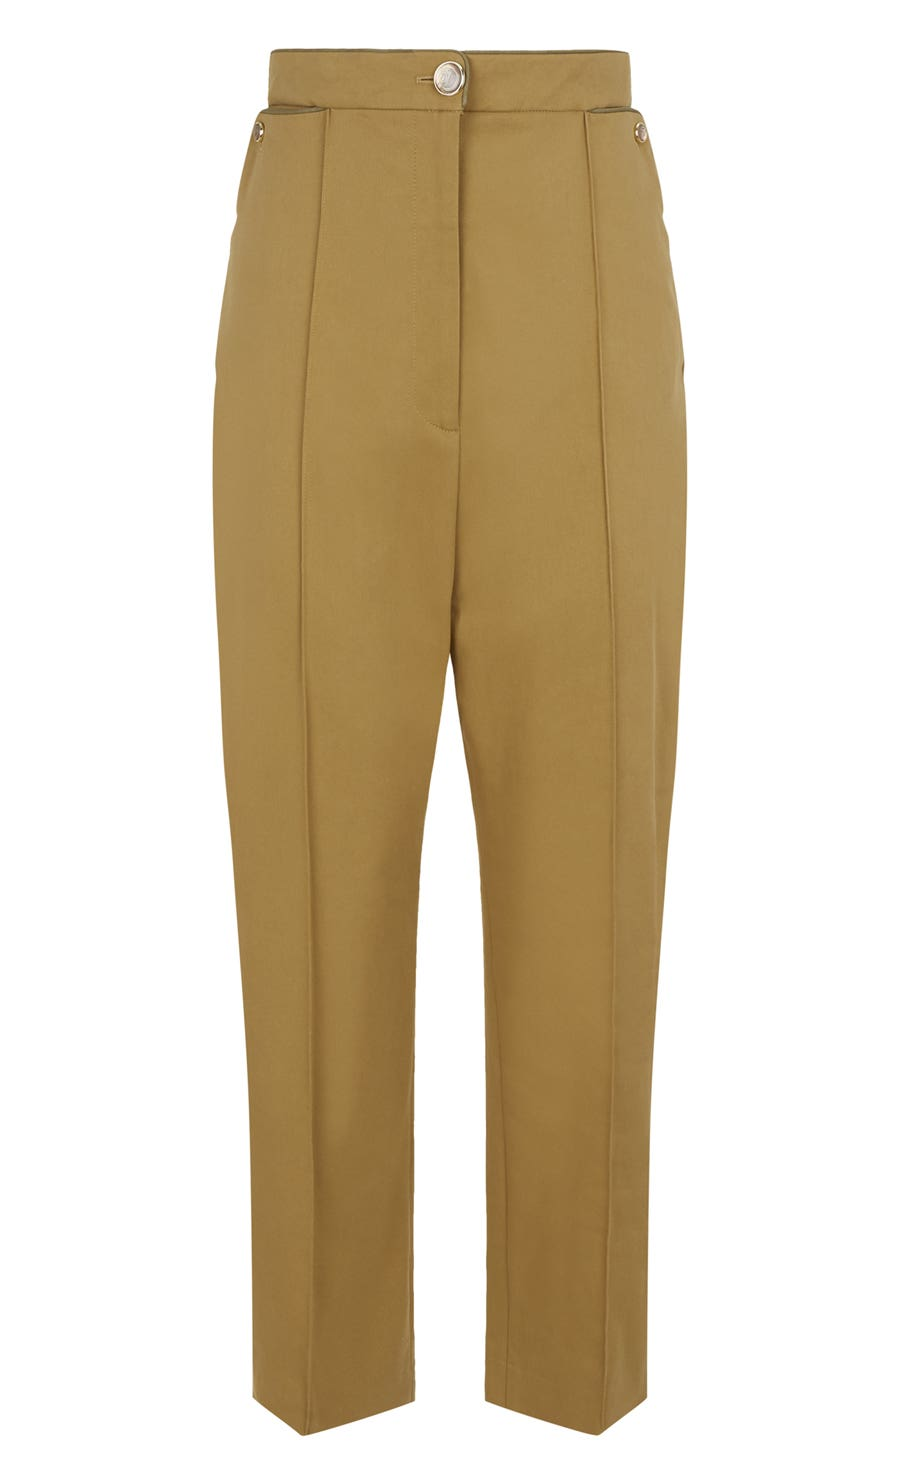 Blueberry Tailoring Trousers, Flax